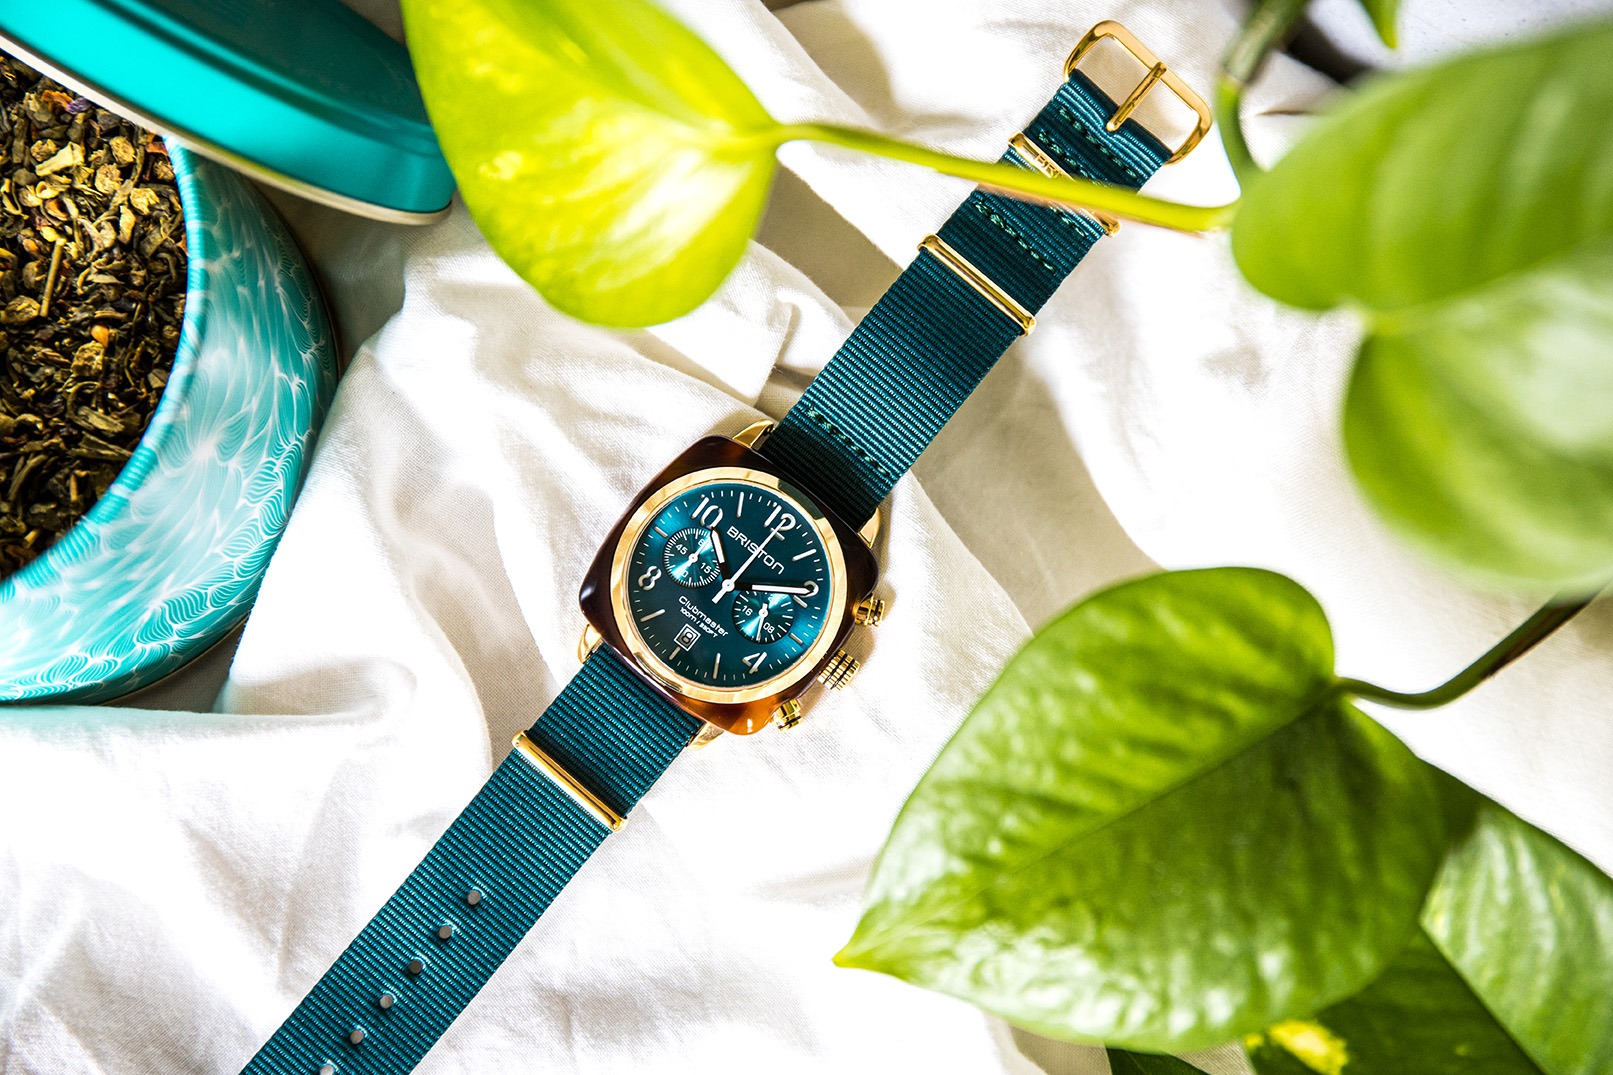 briston-is-the-french-brand-of-watches-for-women-with-sporty-chic-style